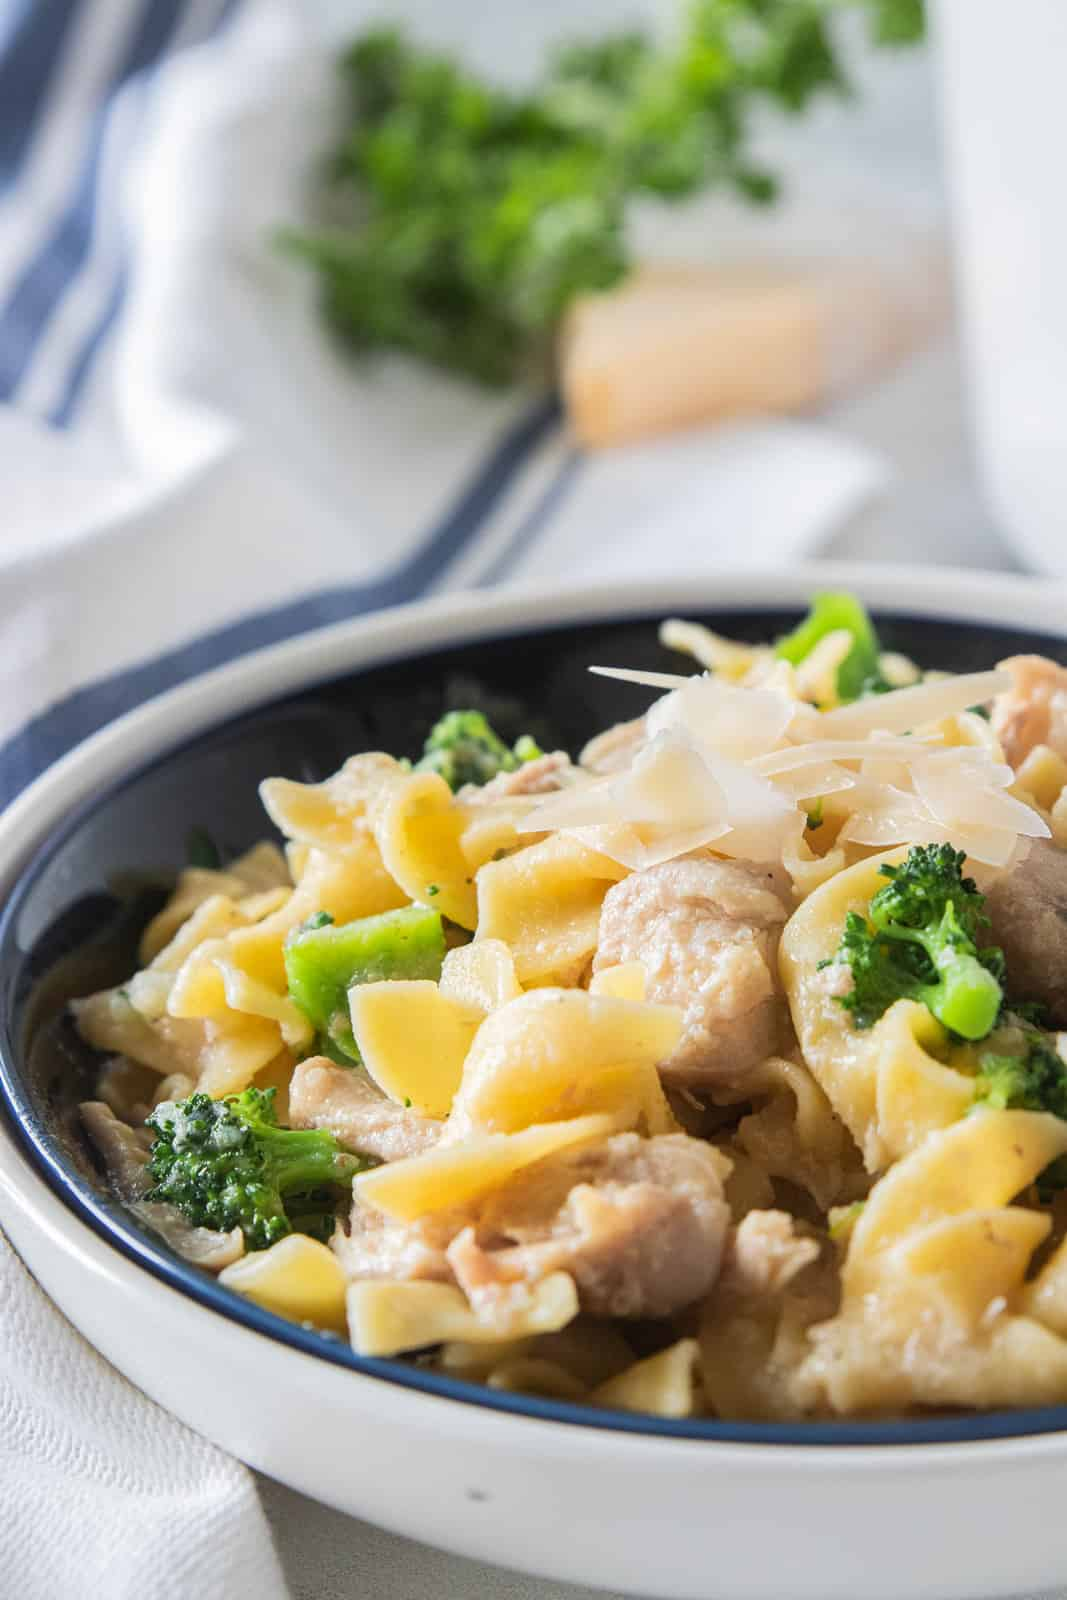 Chicken and noodles in a serving bowl.